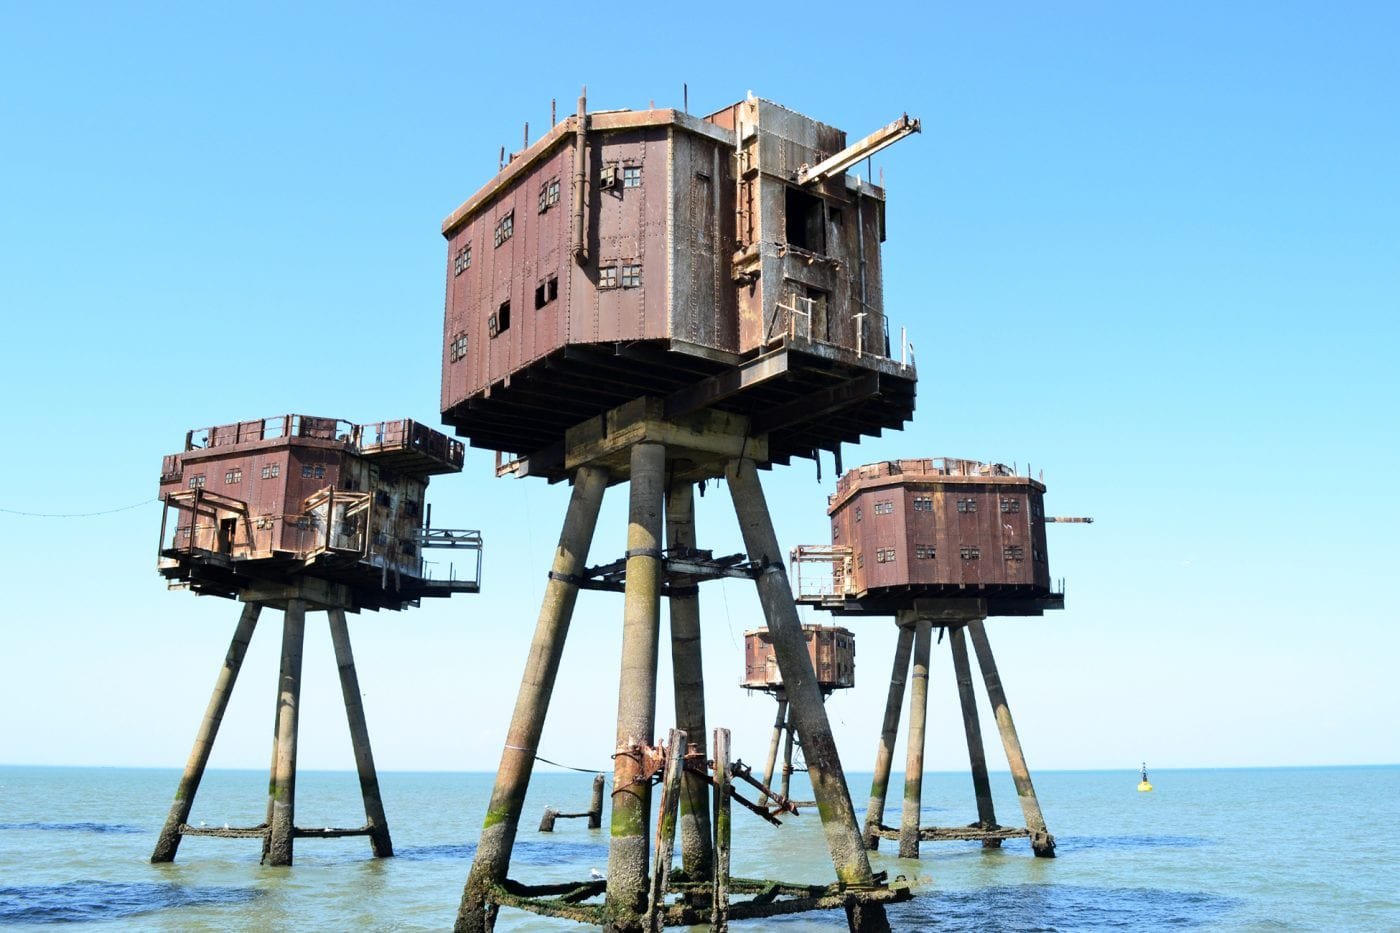 maunsell forts up close to the forts